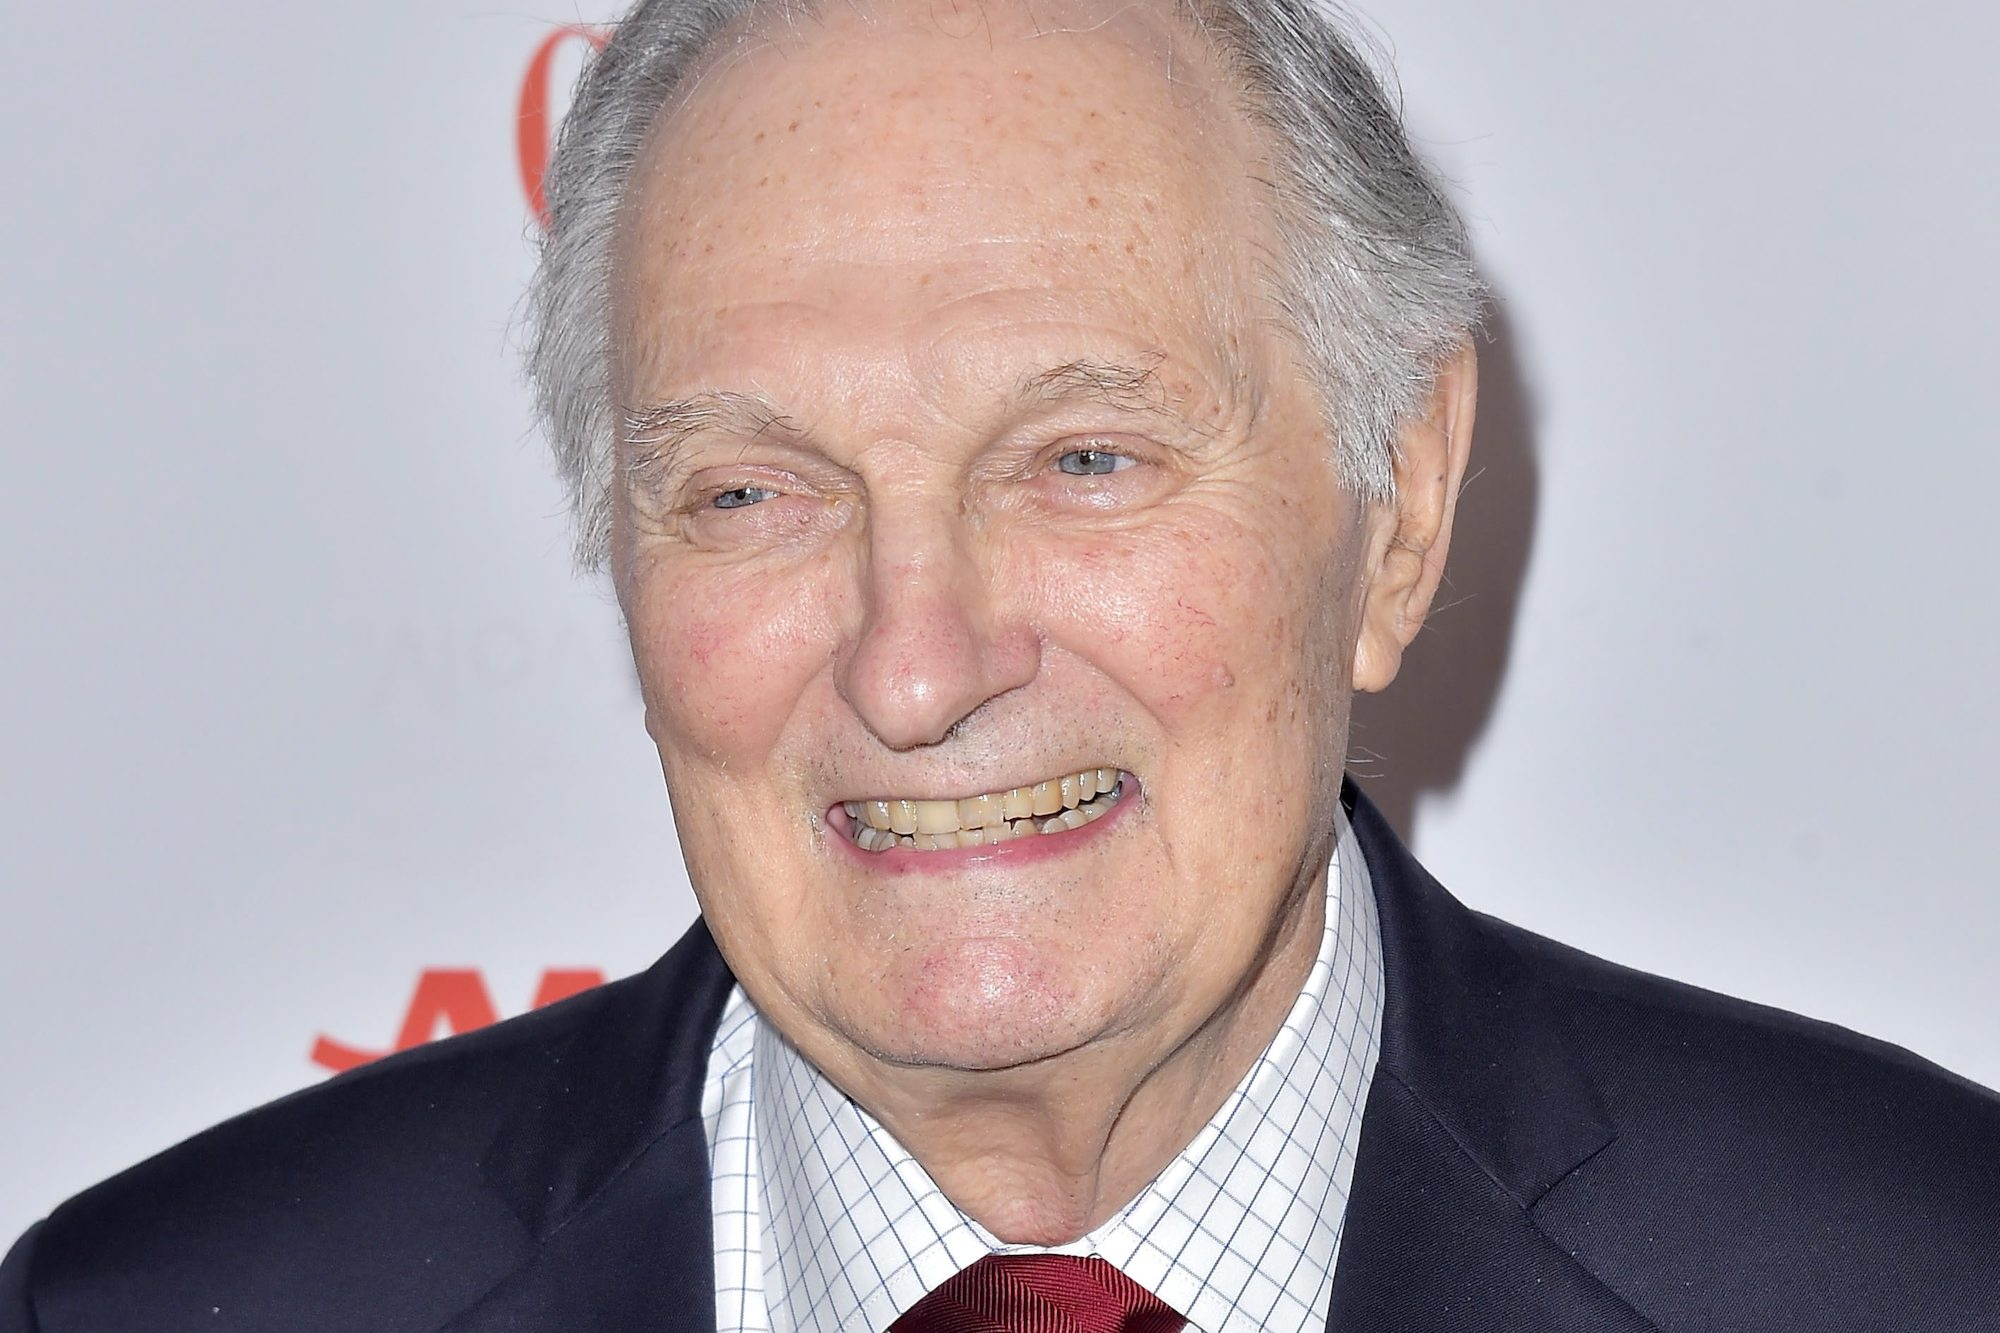 Alan Alda Talks Parkinson's And His Polio Battle As A Child